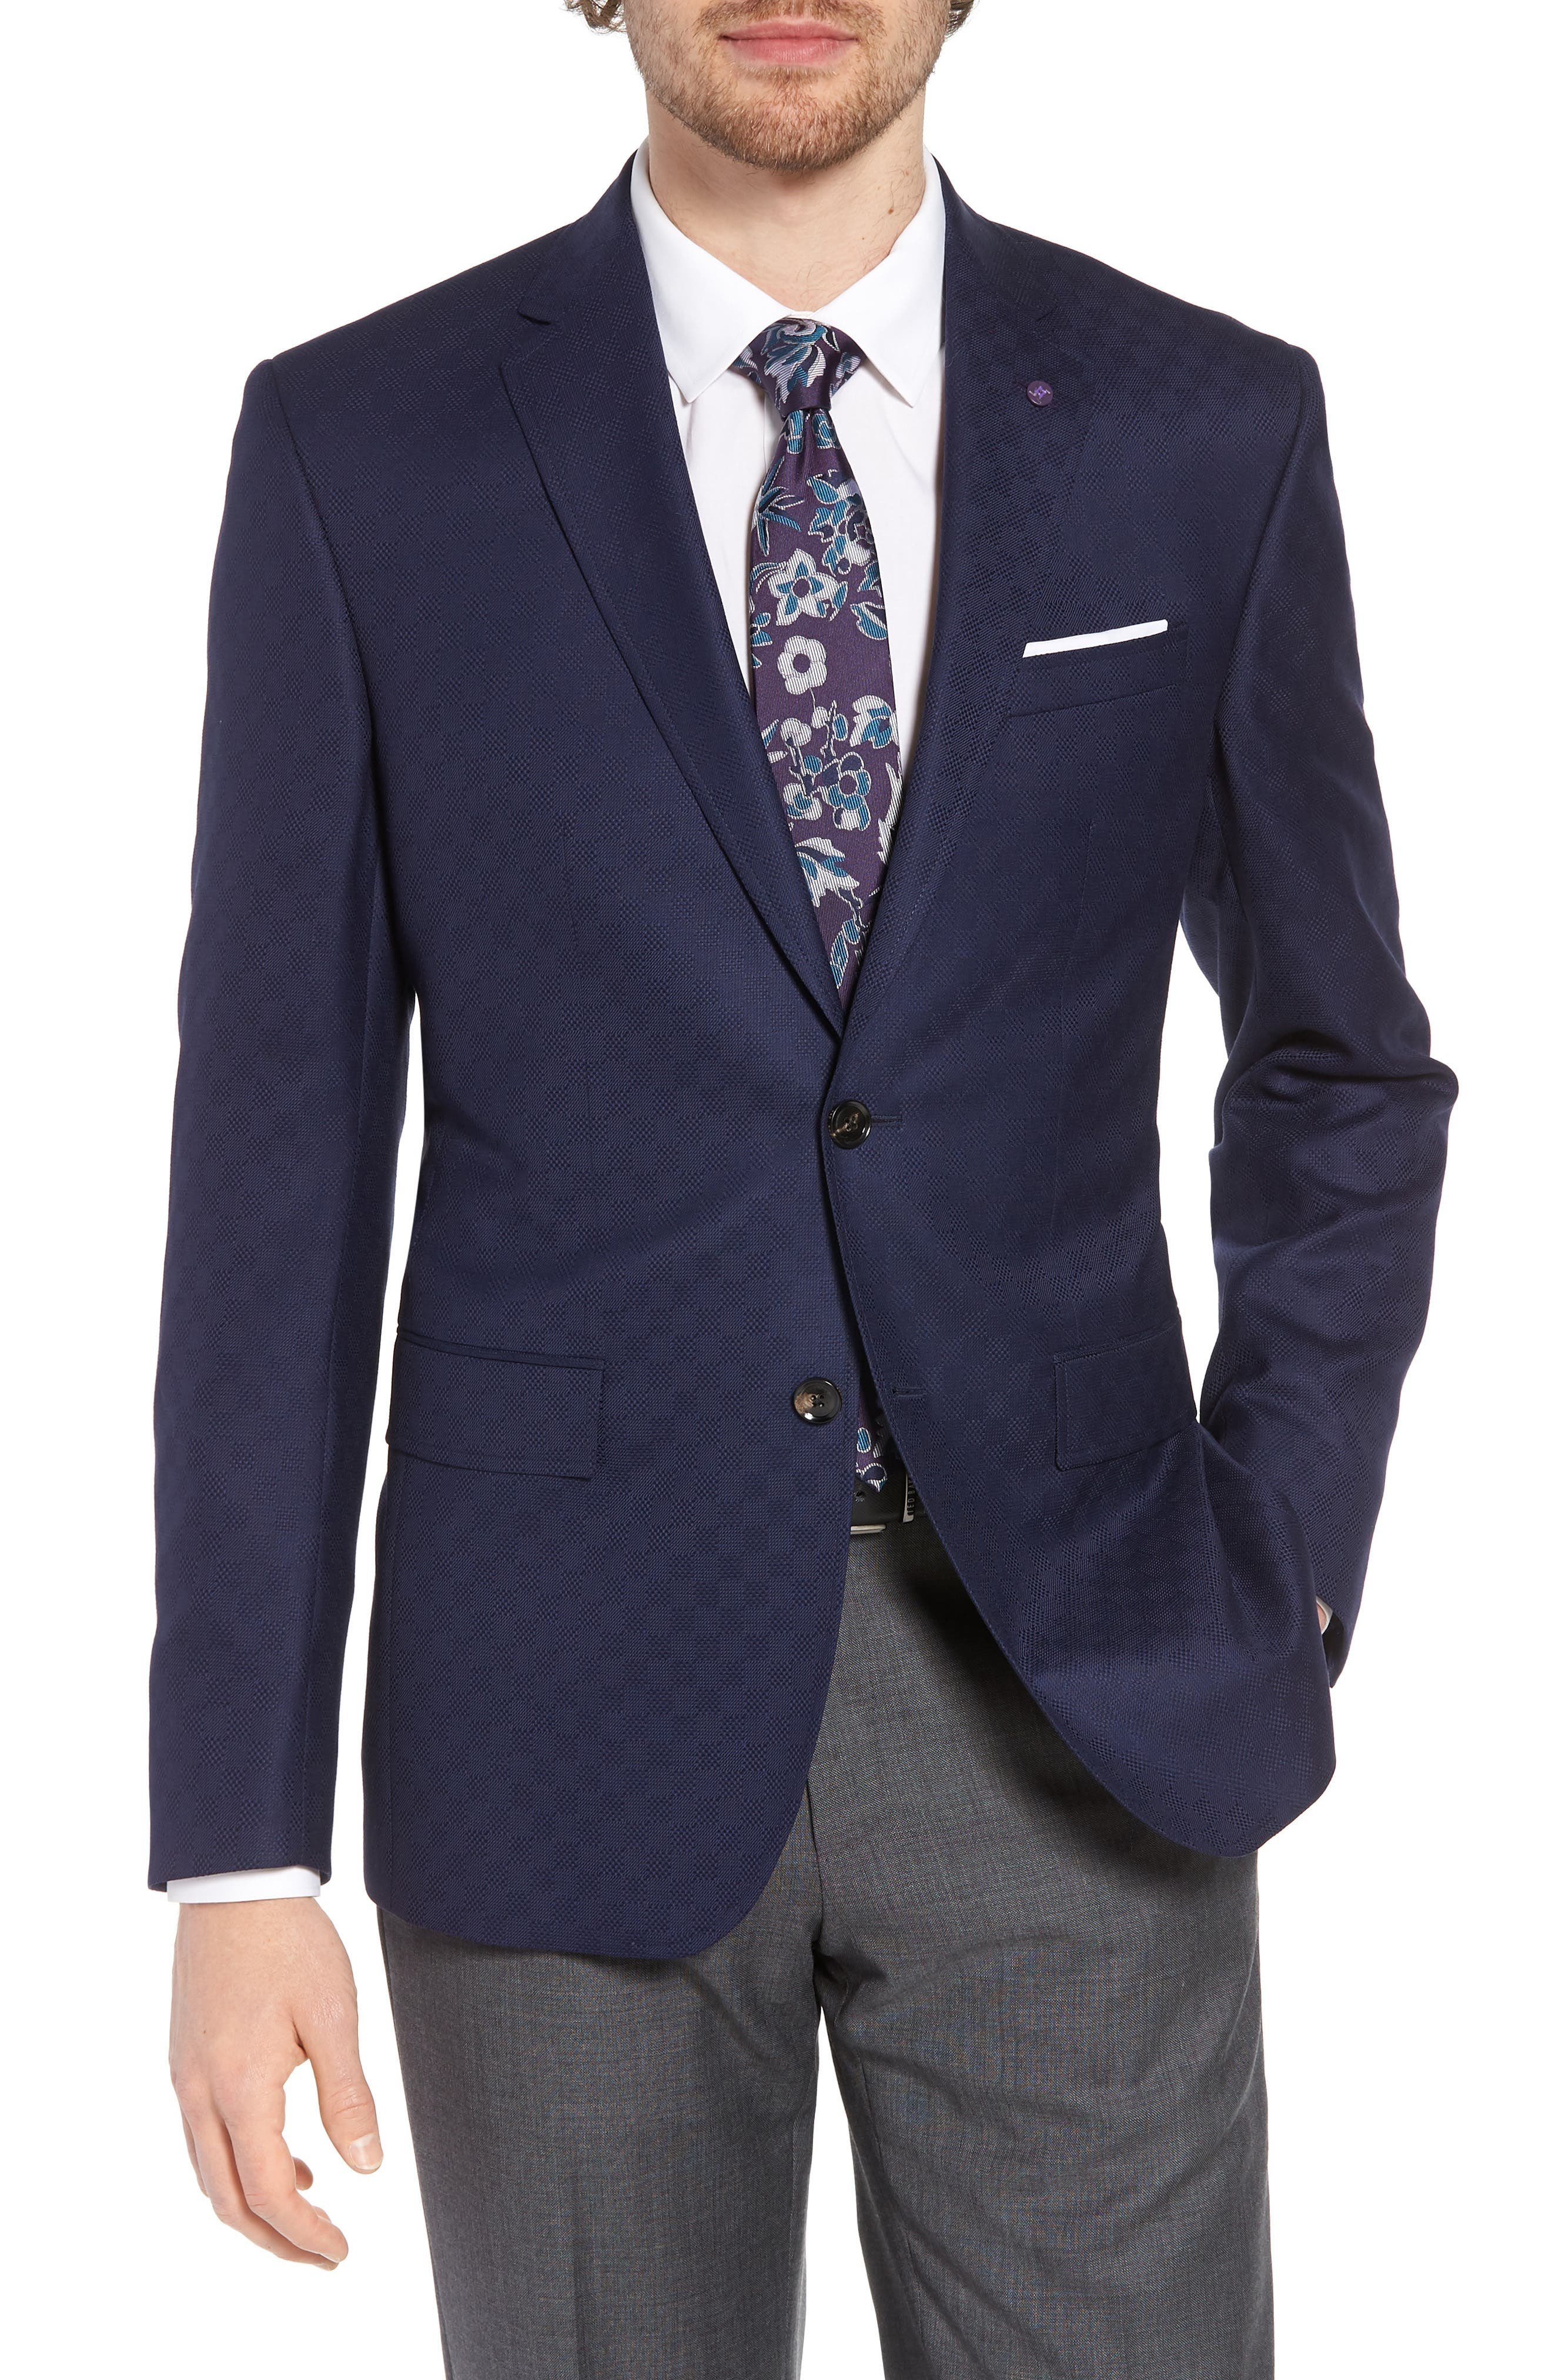 Jay Trim Fit Check Wool Sport Coat,                         Main,                         color, Navy